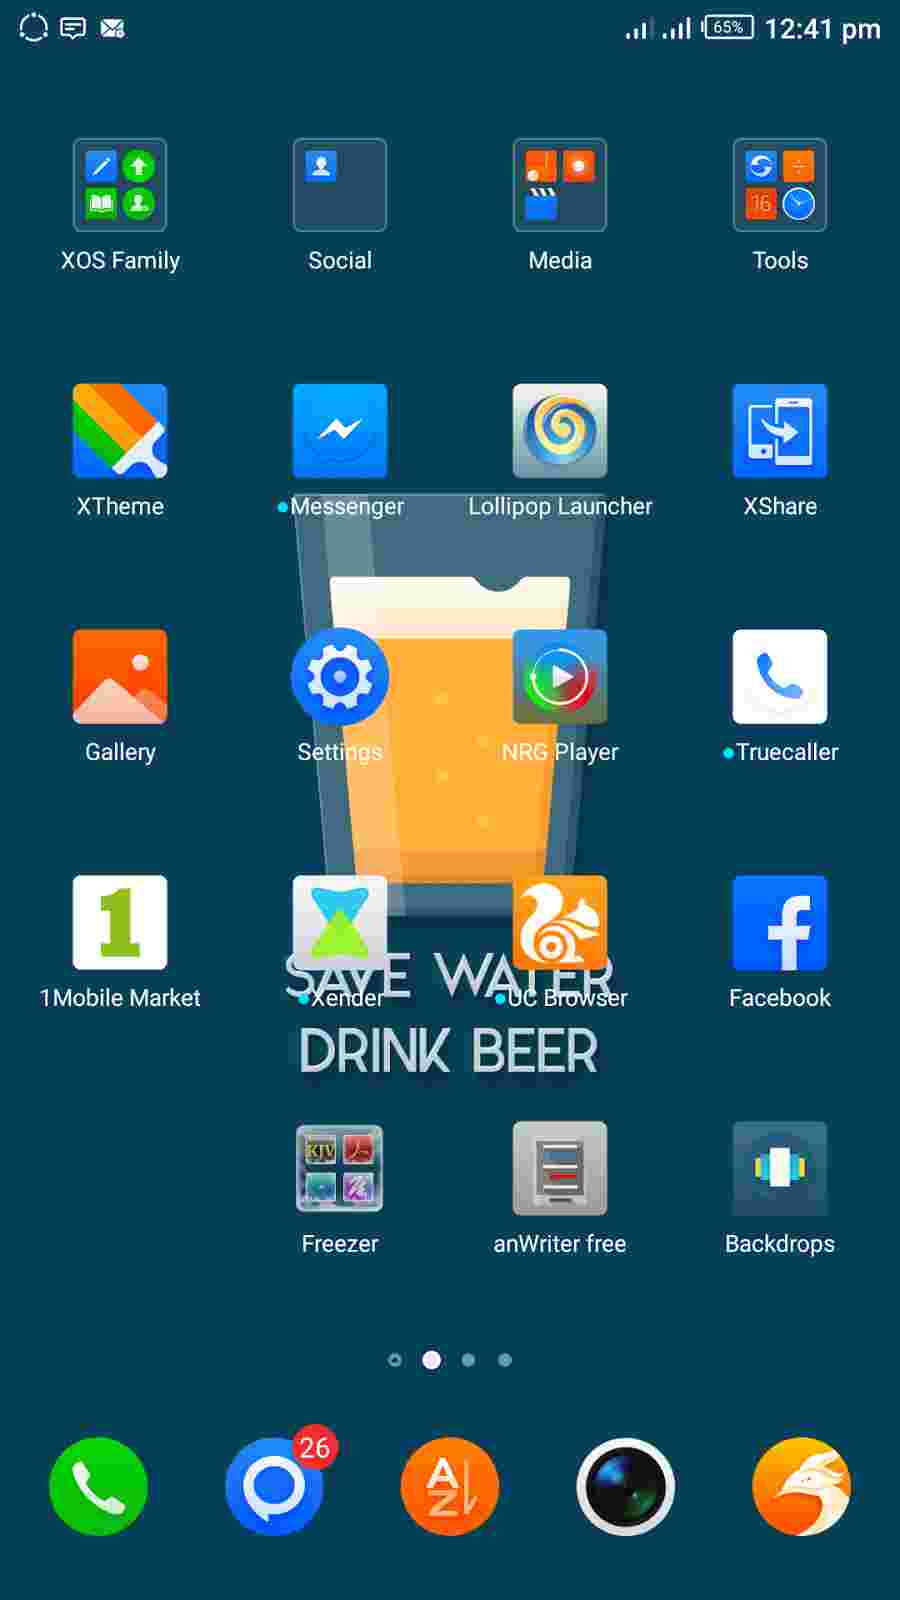 Step 1 - How To Hide And Disable Apps Using Infinix XOS App Freezer